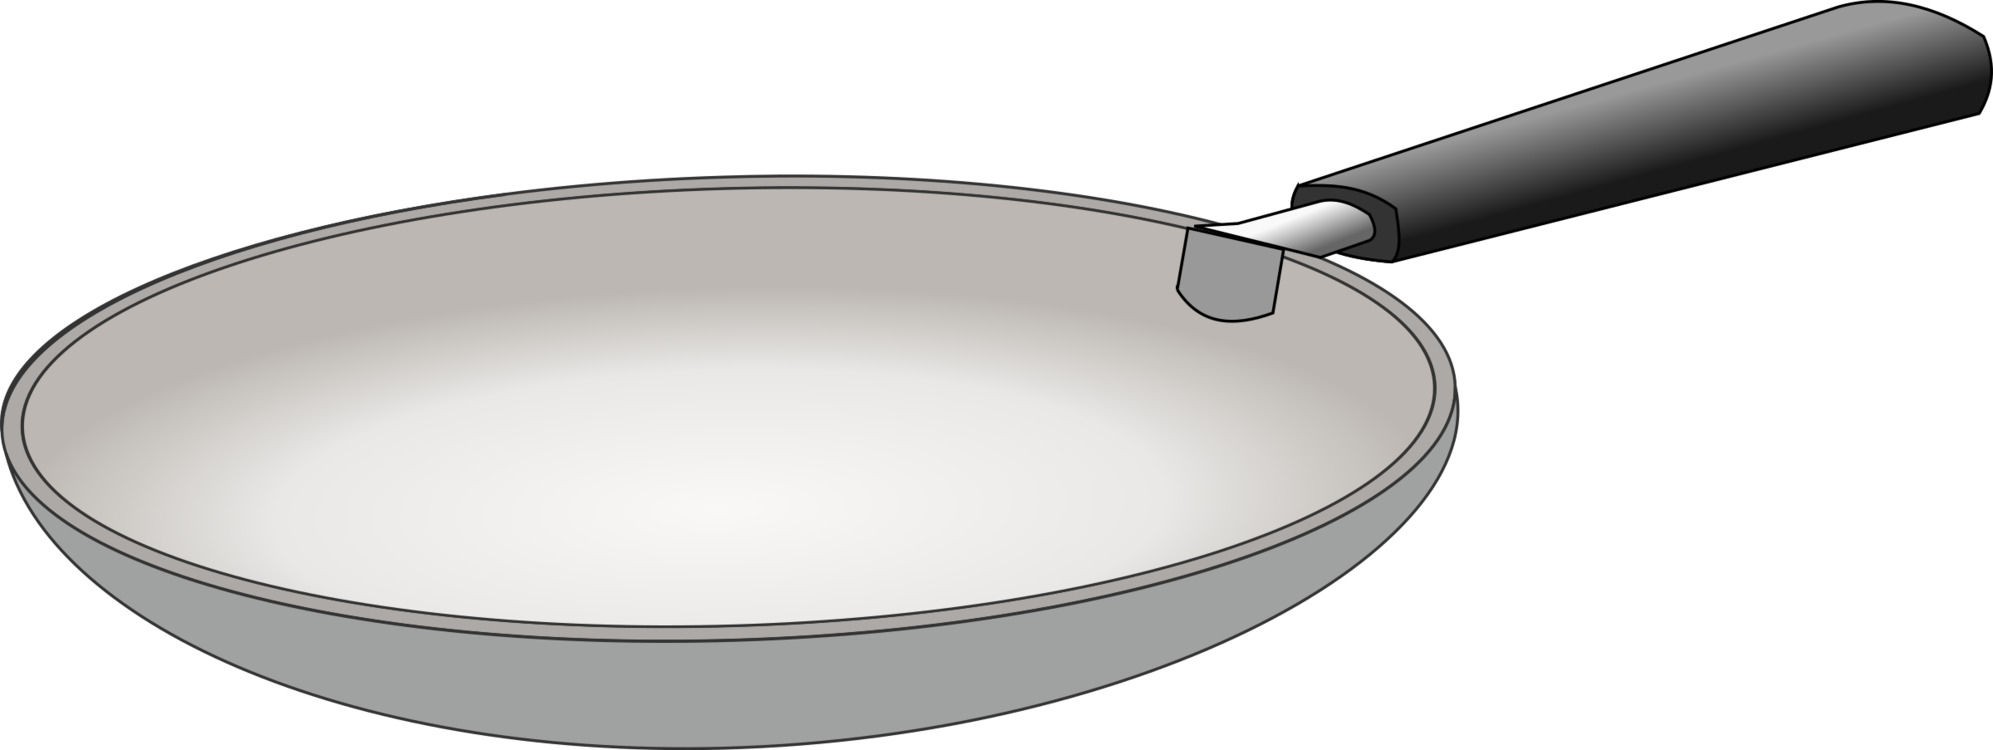 Frying Pan,Cookware And Bakeware,Material